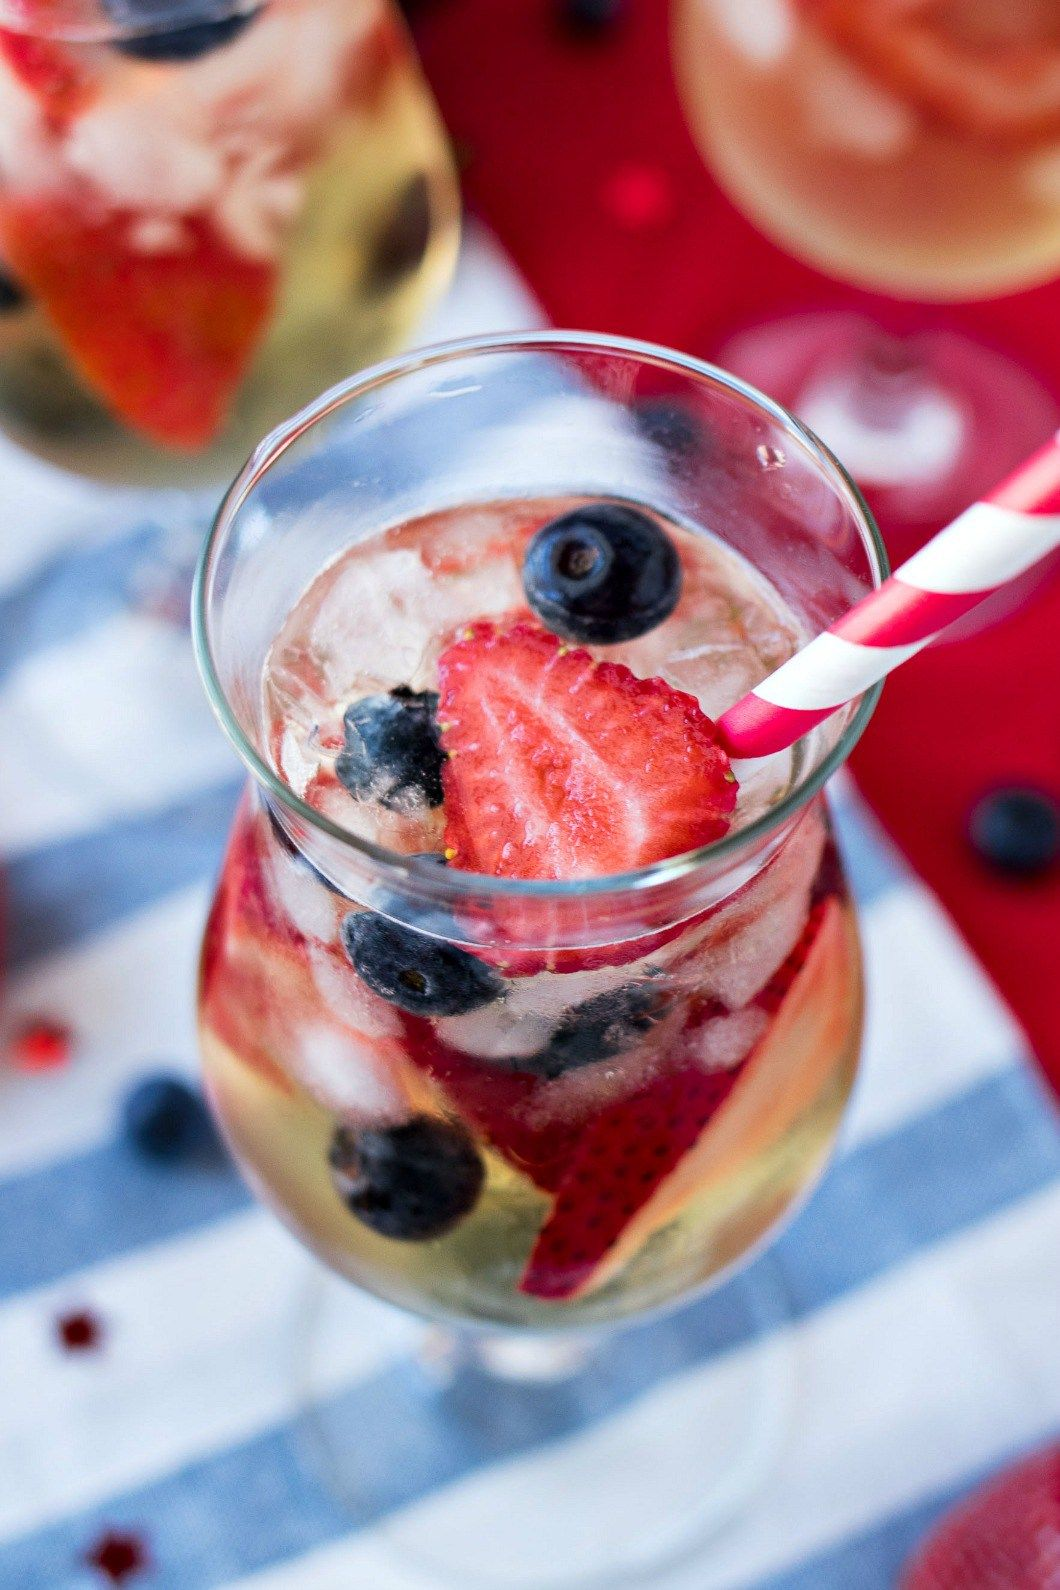 Red White Blue Sangria A Refreshing White Sangria Made With Dry White Wine Brandy And Tons Of Strawbe White Wine Sangria Gluten Free Alcohol White Wine